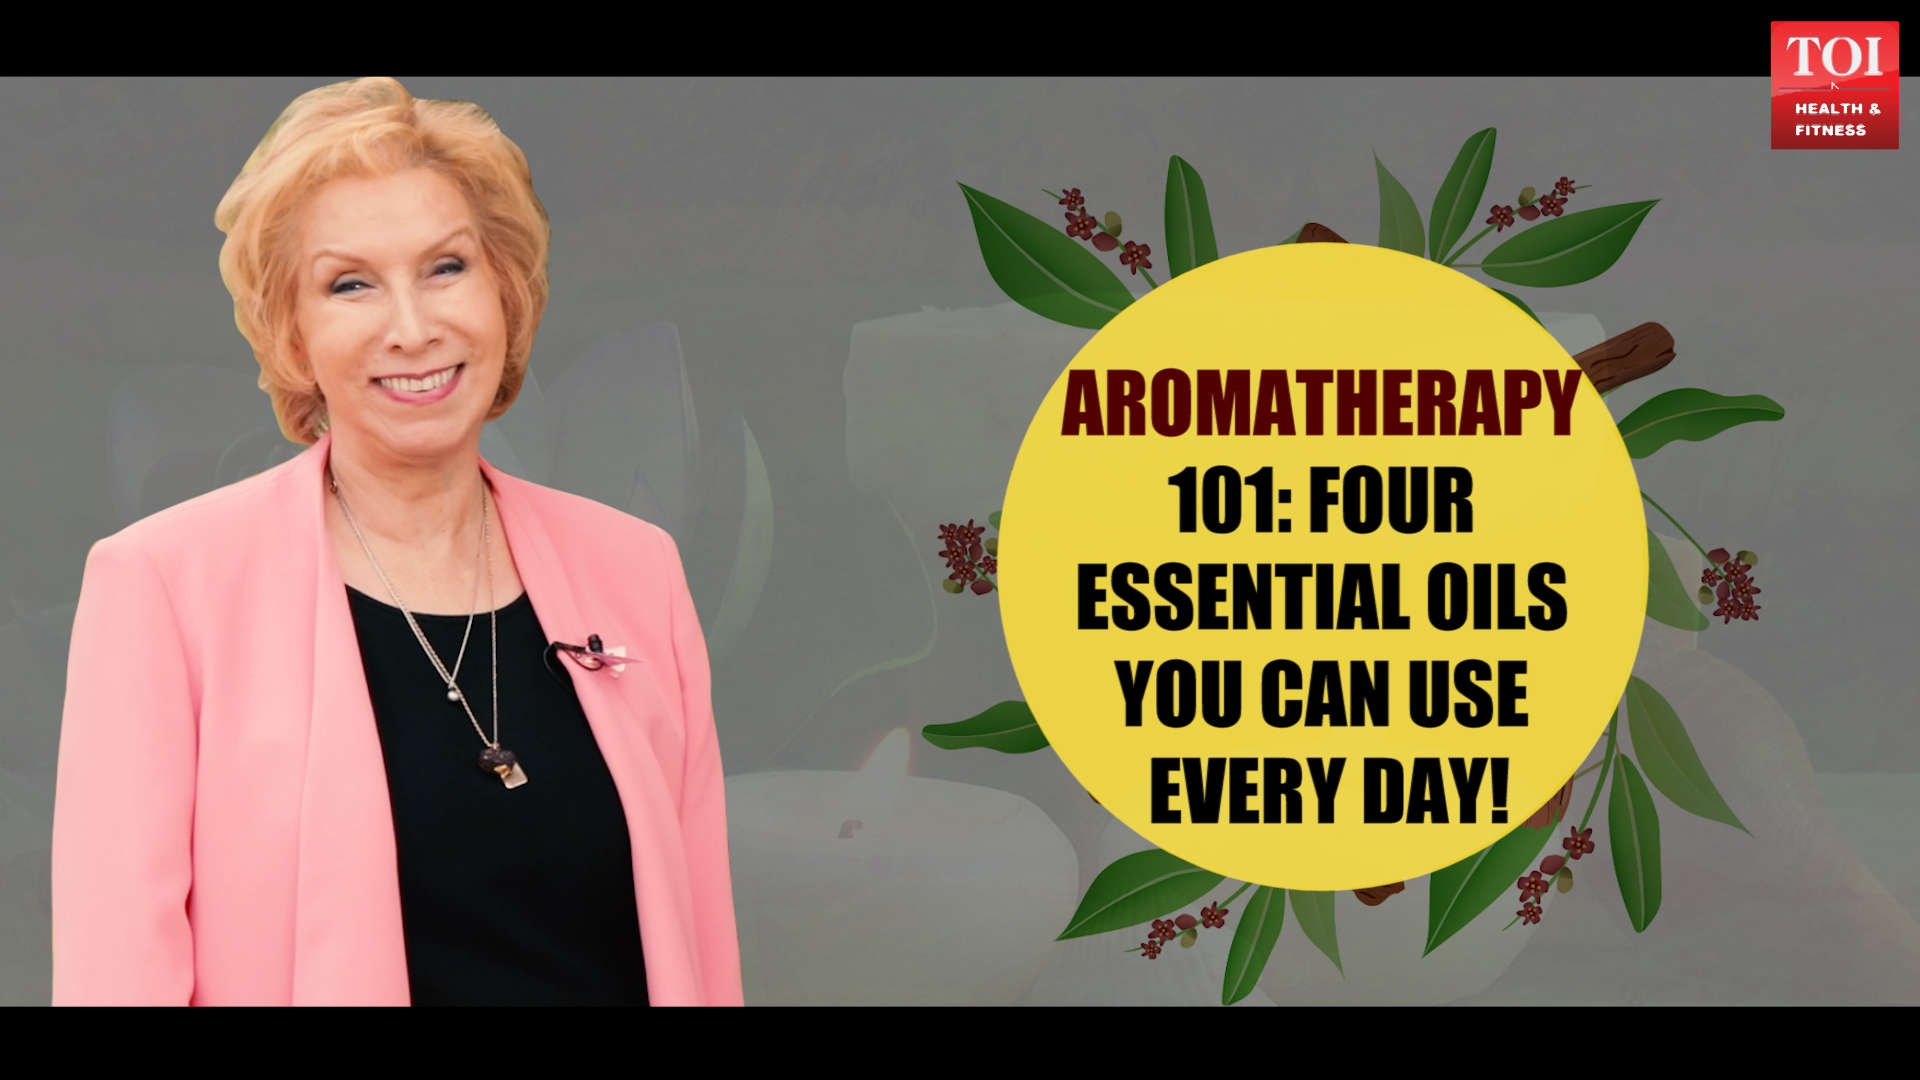 aromatherapy-101-four-essential-oils-you-can-use-everyday